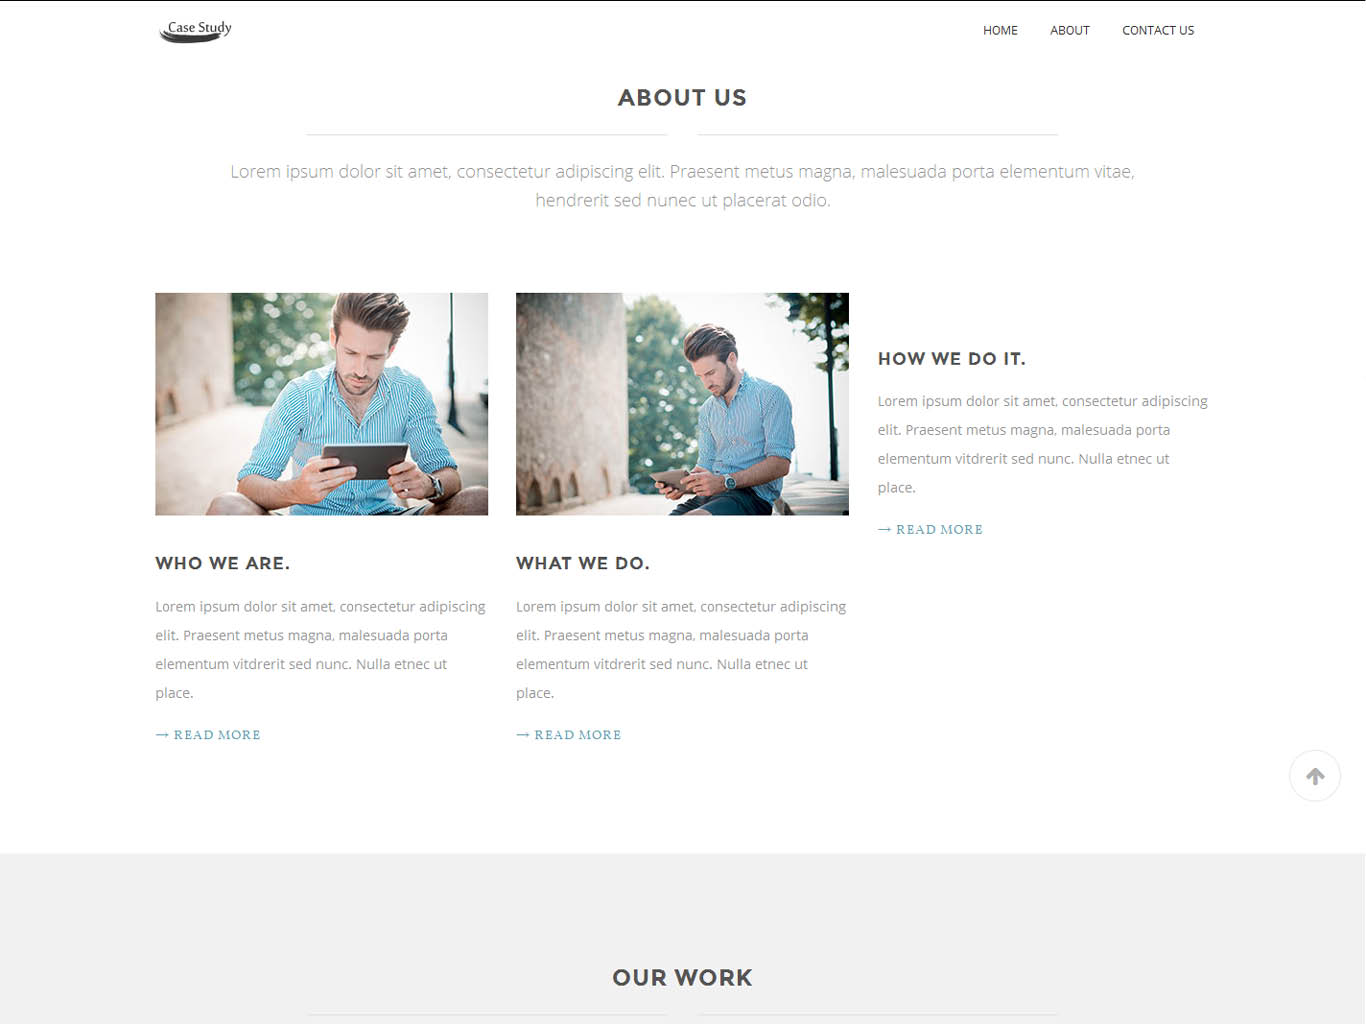 case study- mobile website design-about